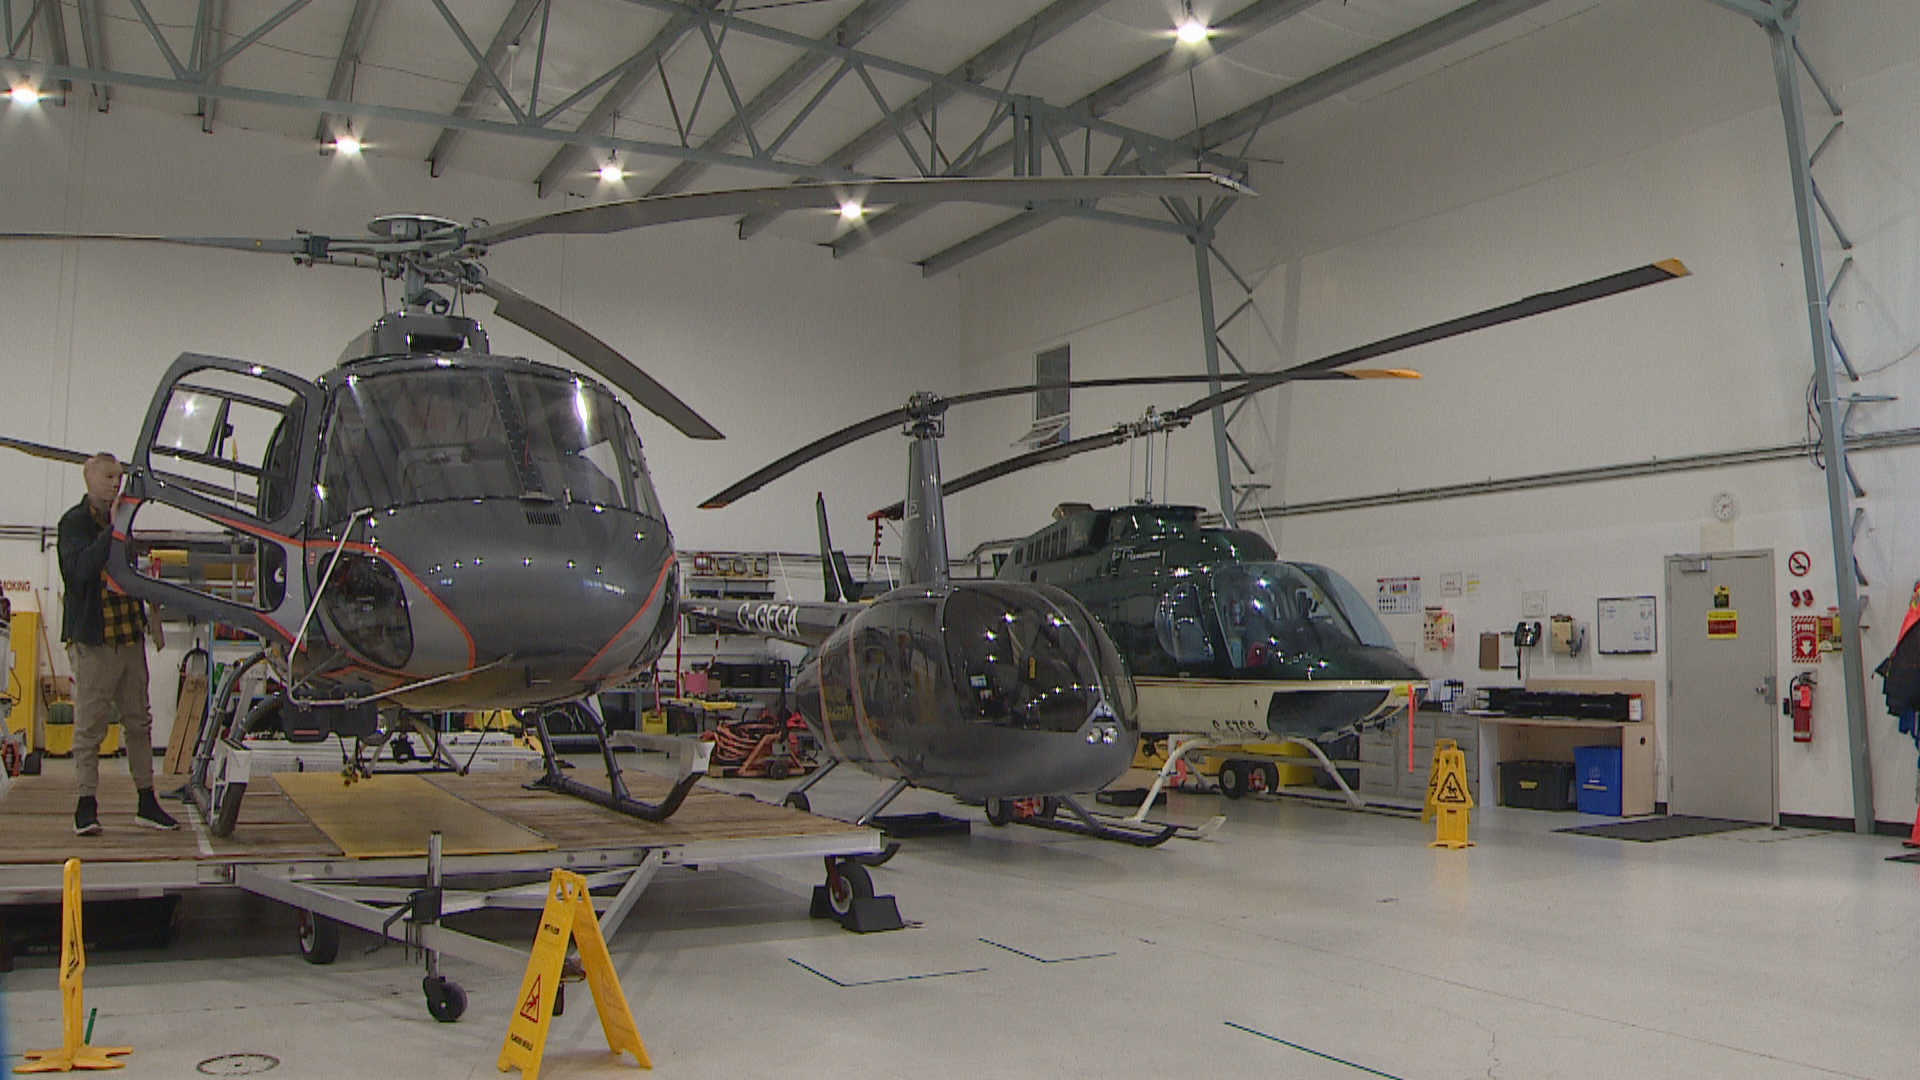 Kyle Hynes, a self-proclaimed workaholic, is a project manager for L.R. Helicopters. (Justin Pennell/CBC)